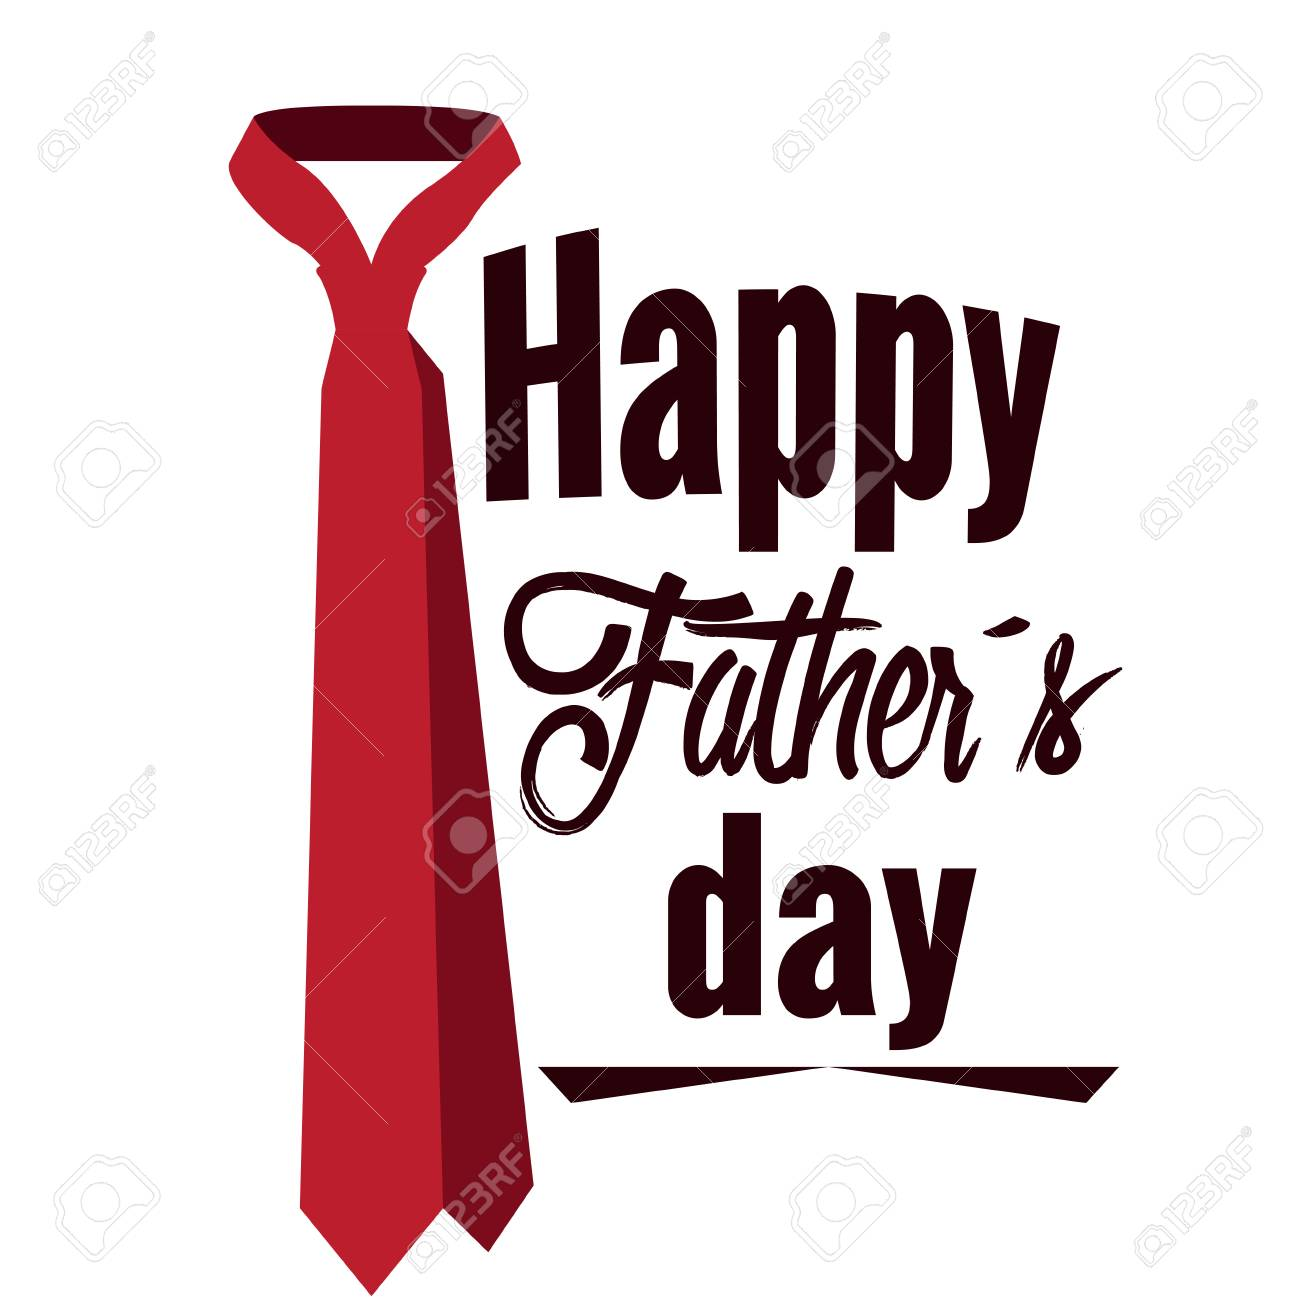 hight resolution of happy fathers day graphic design vectro illustration stock vector 79542279